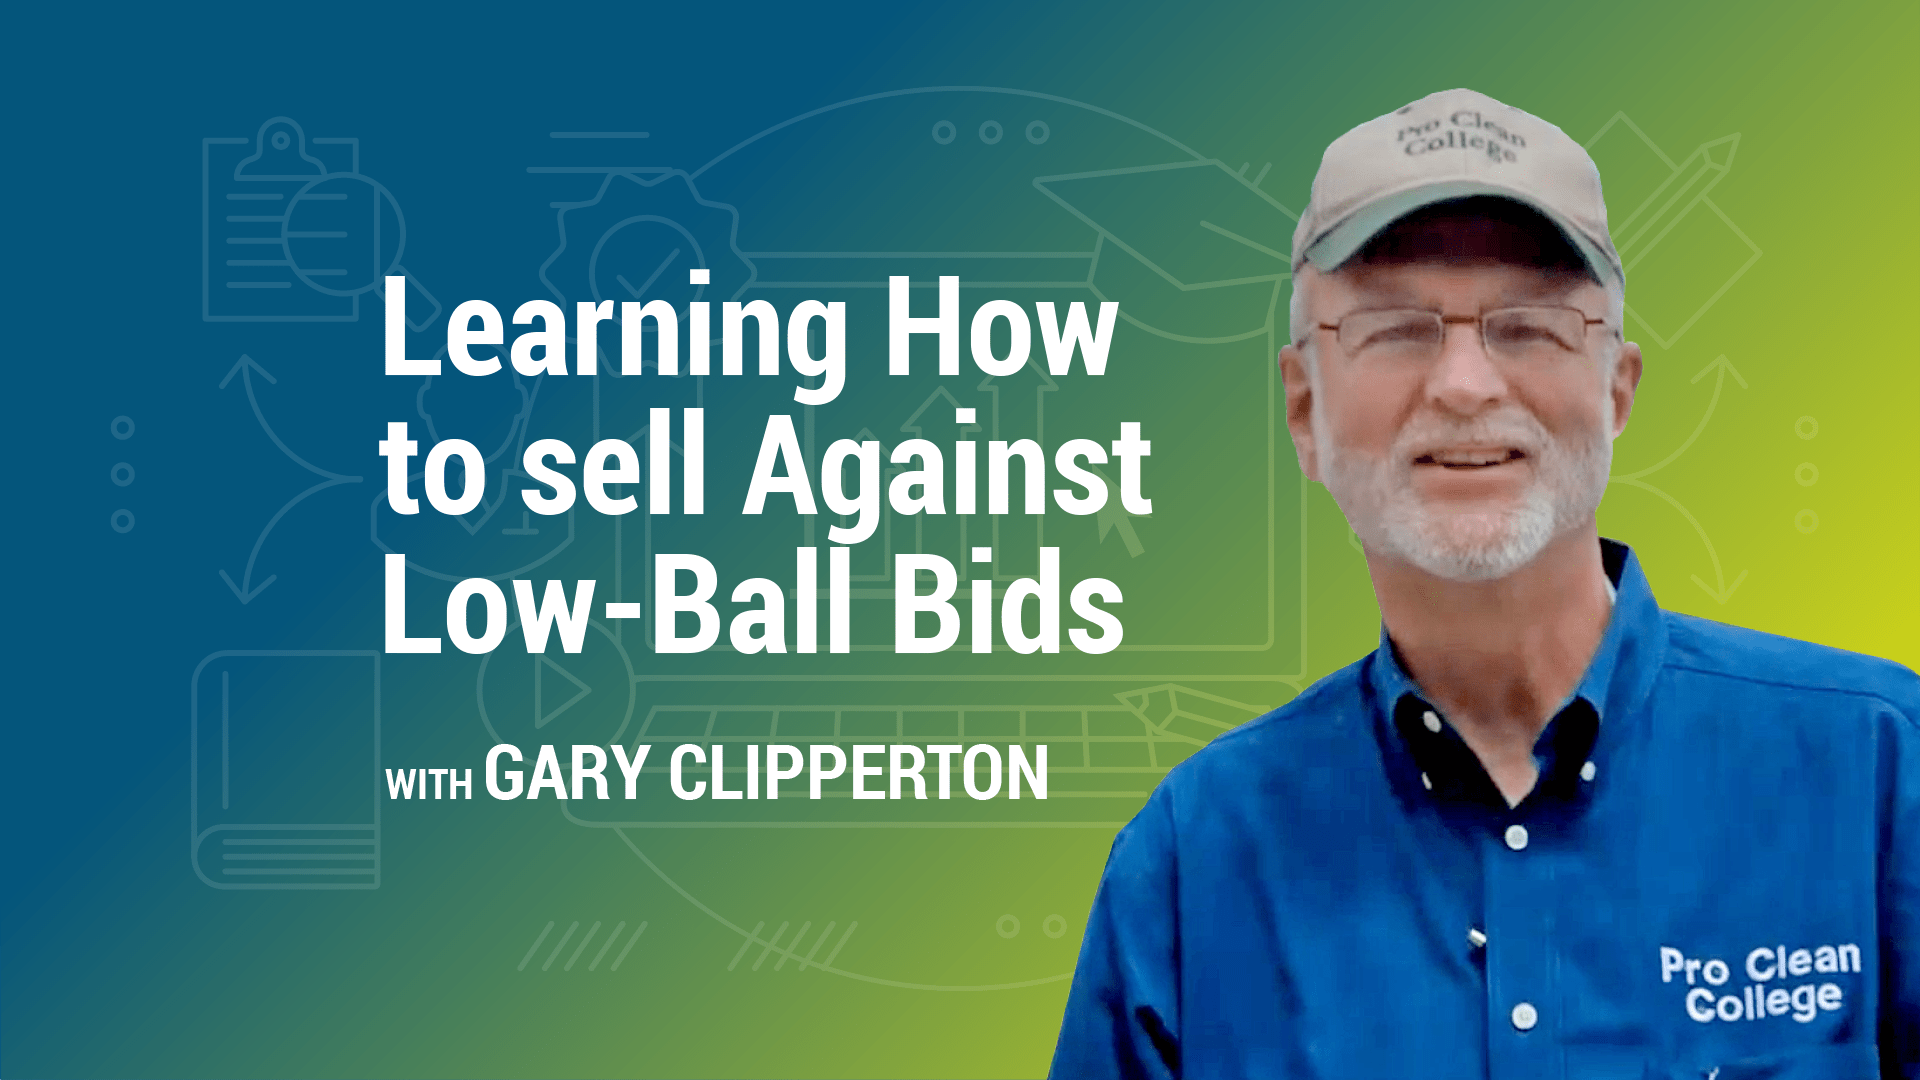 Learning How to Sell Against Low Ball Bidders